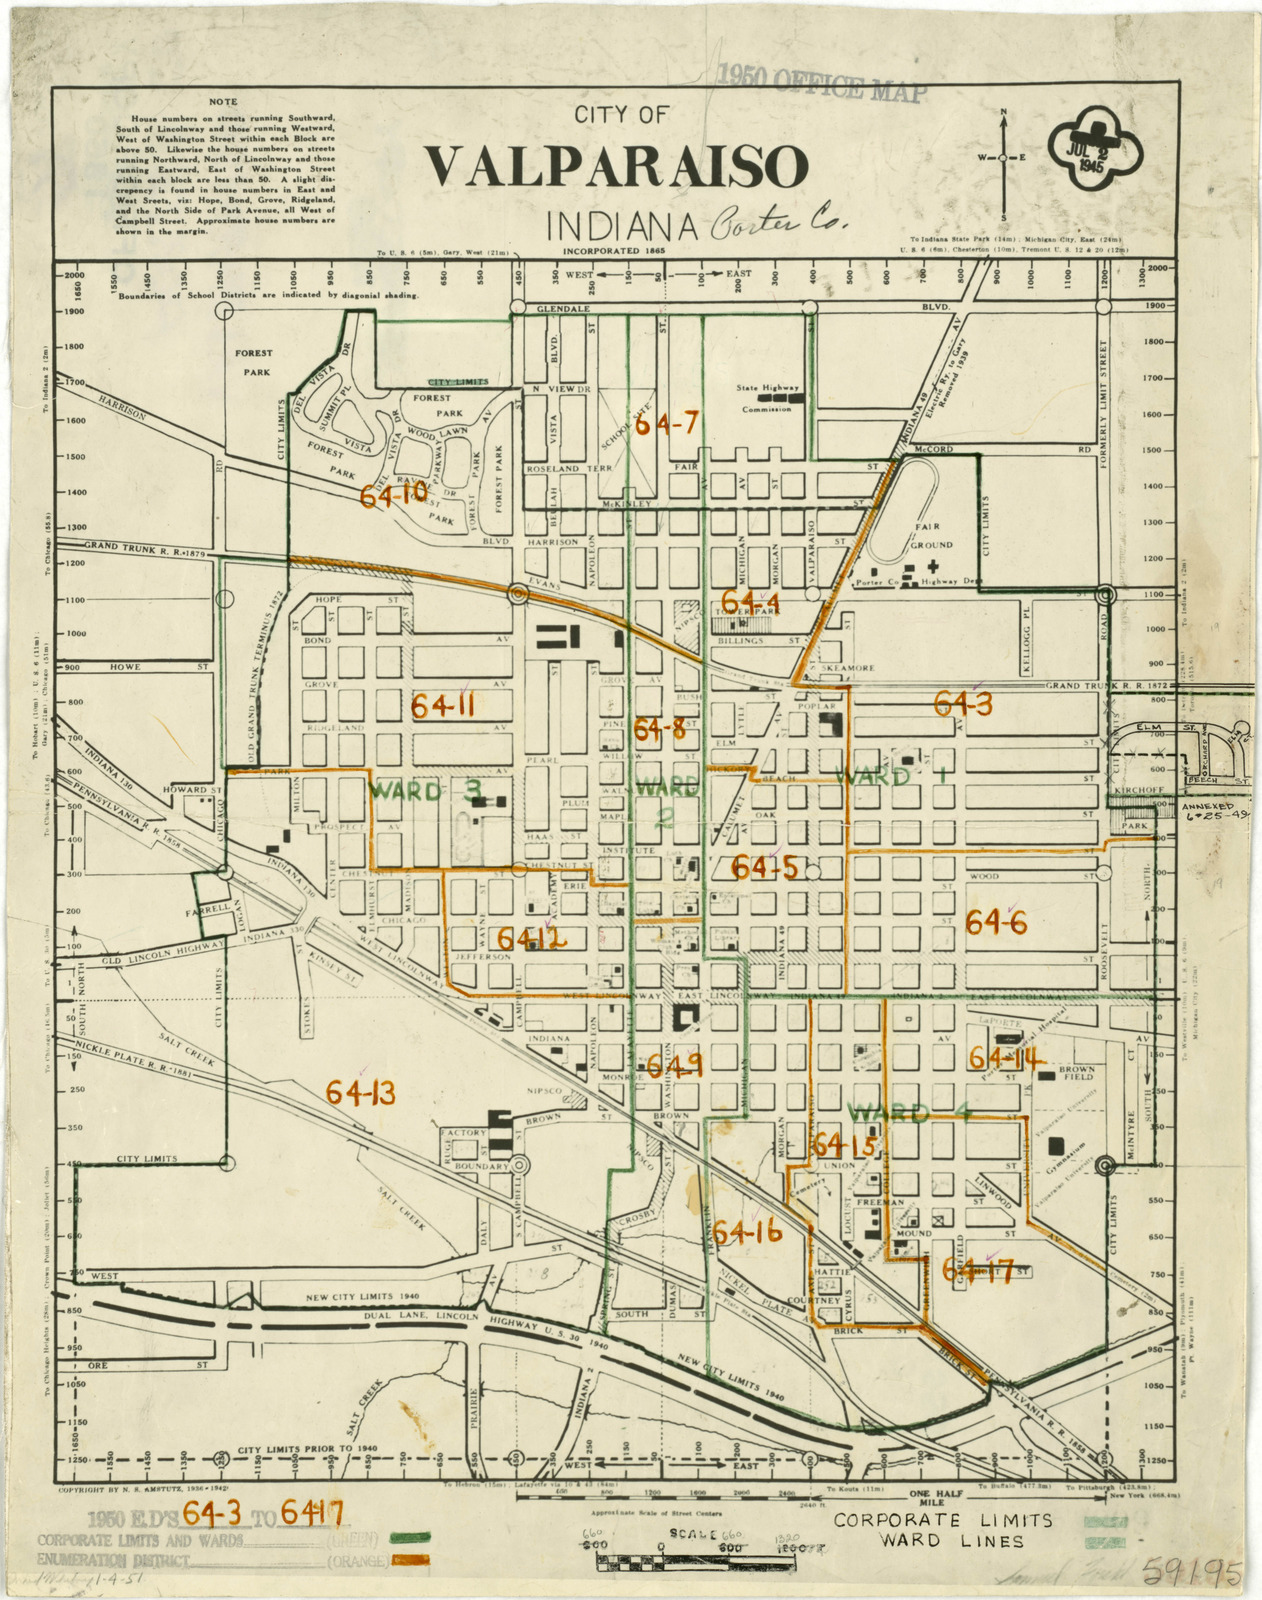 1950 Census Enumeration District Maps Indiana In Porter County